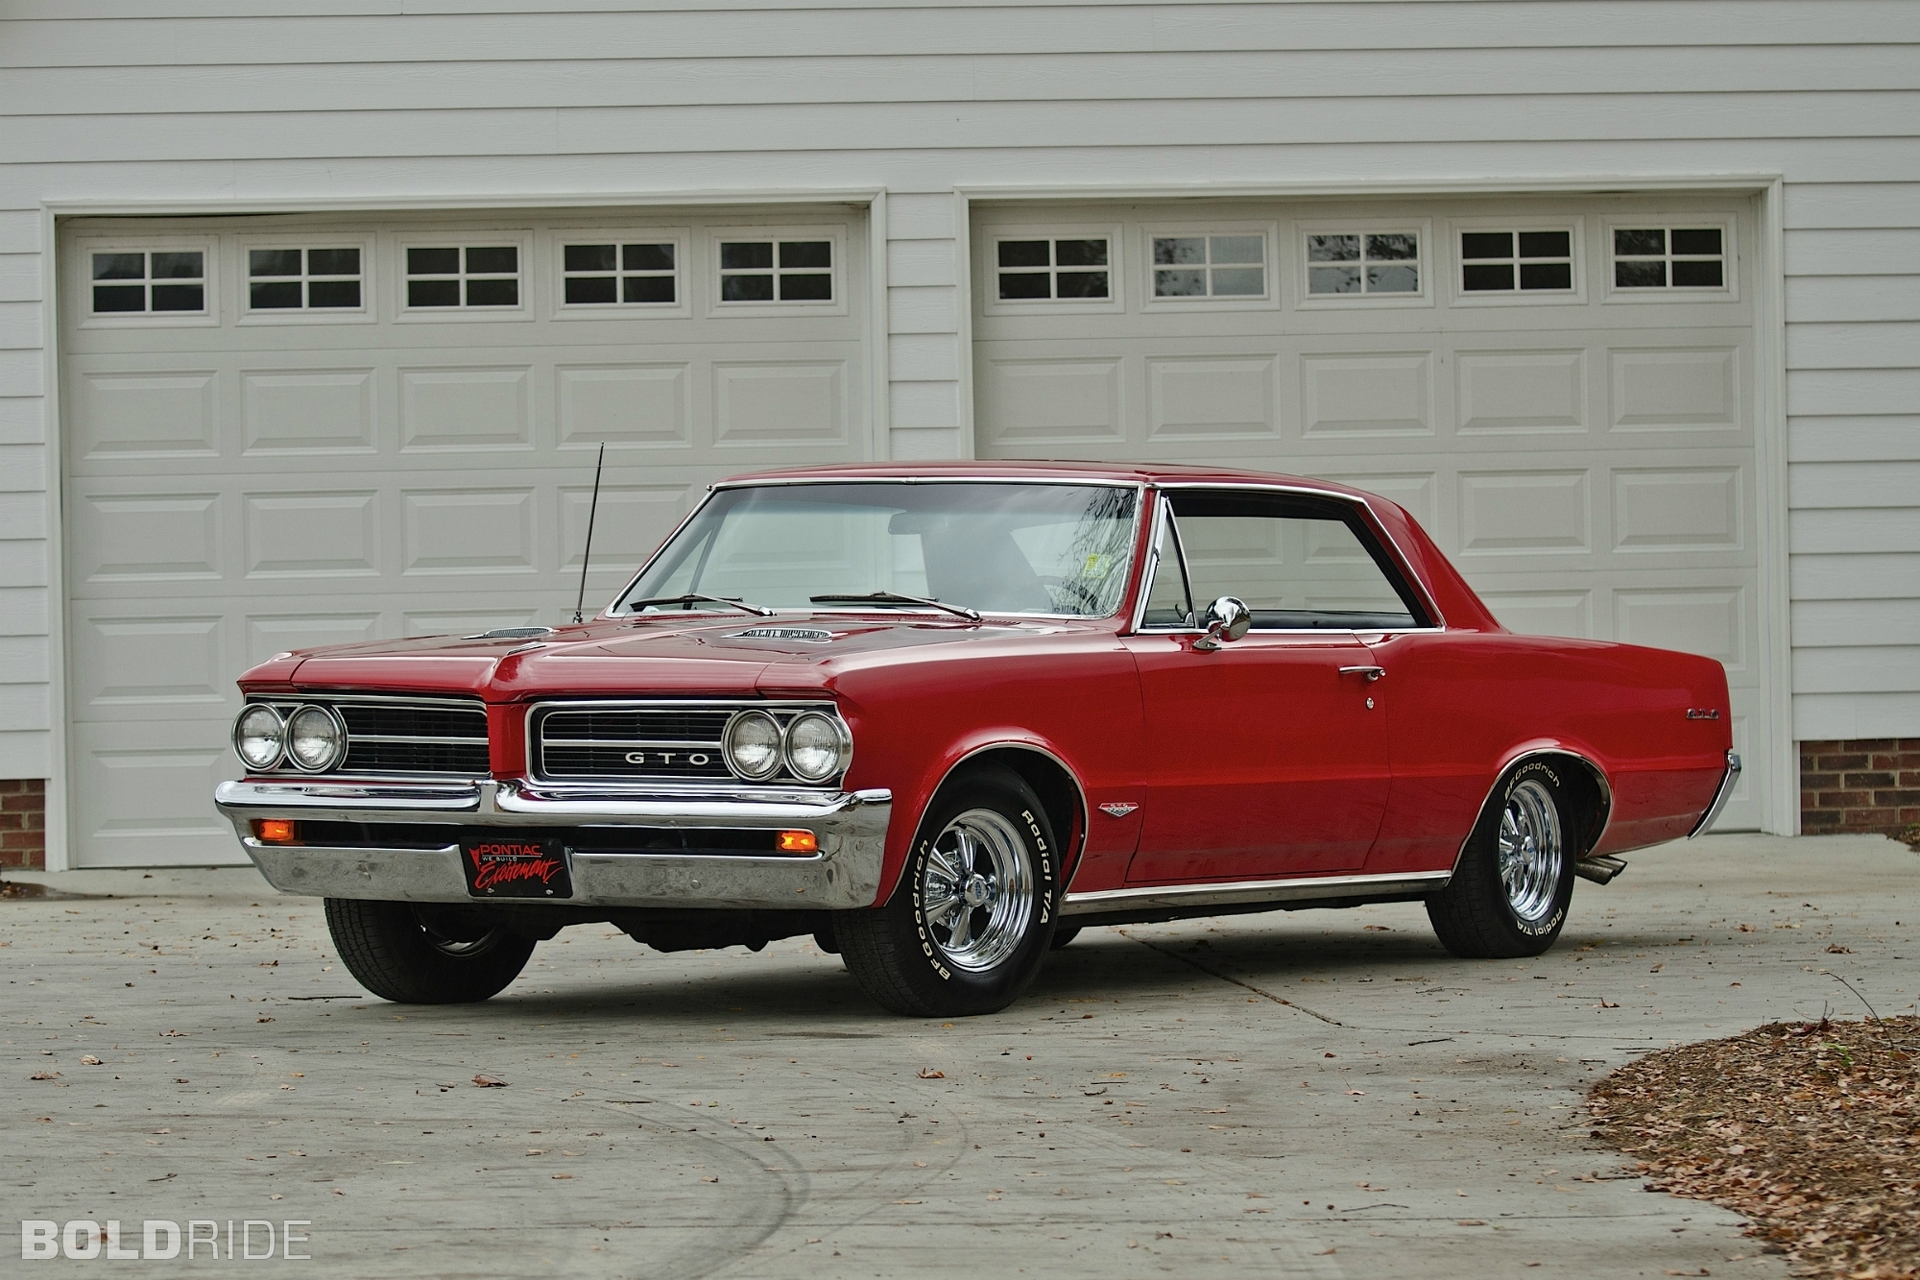 The Pontiac GTO: 50 Years Later